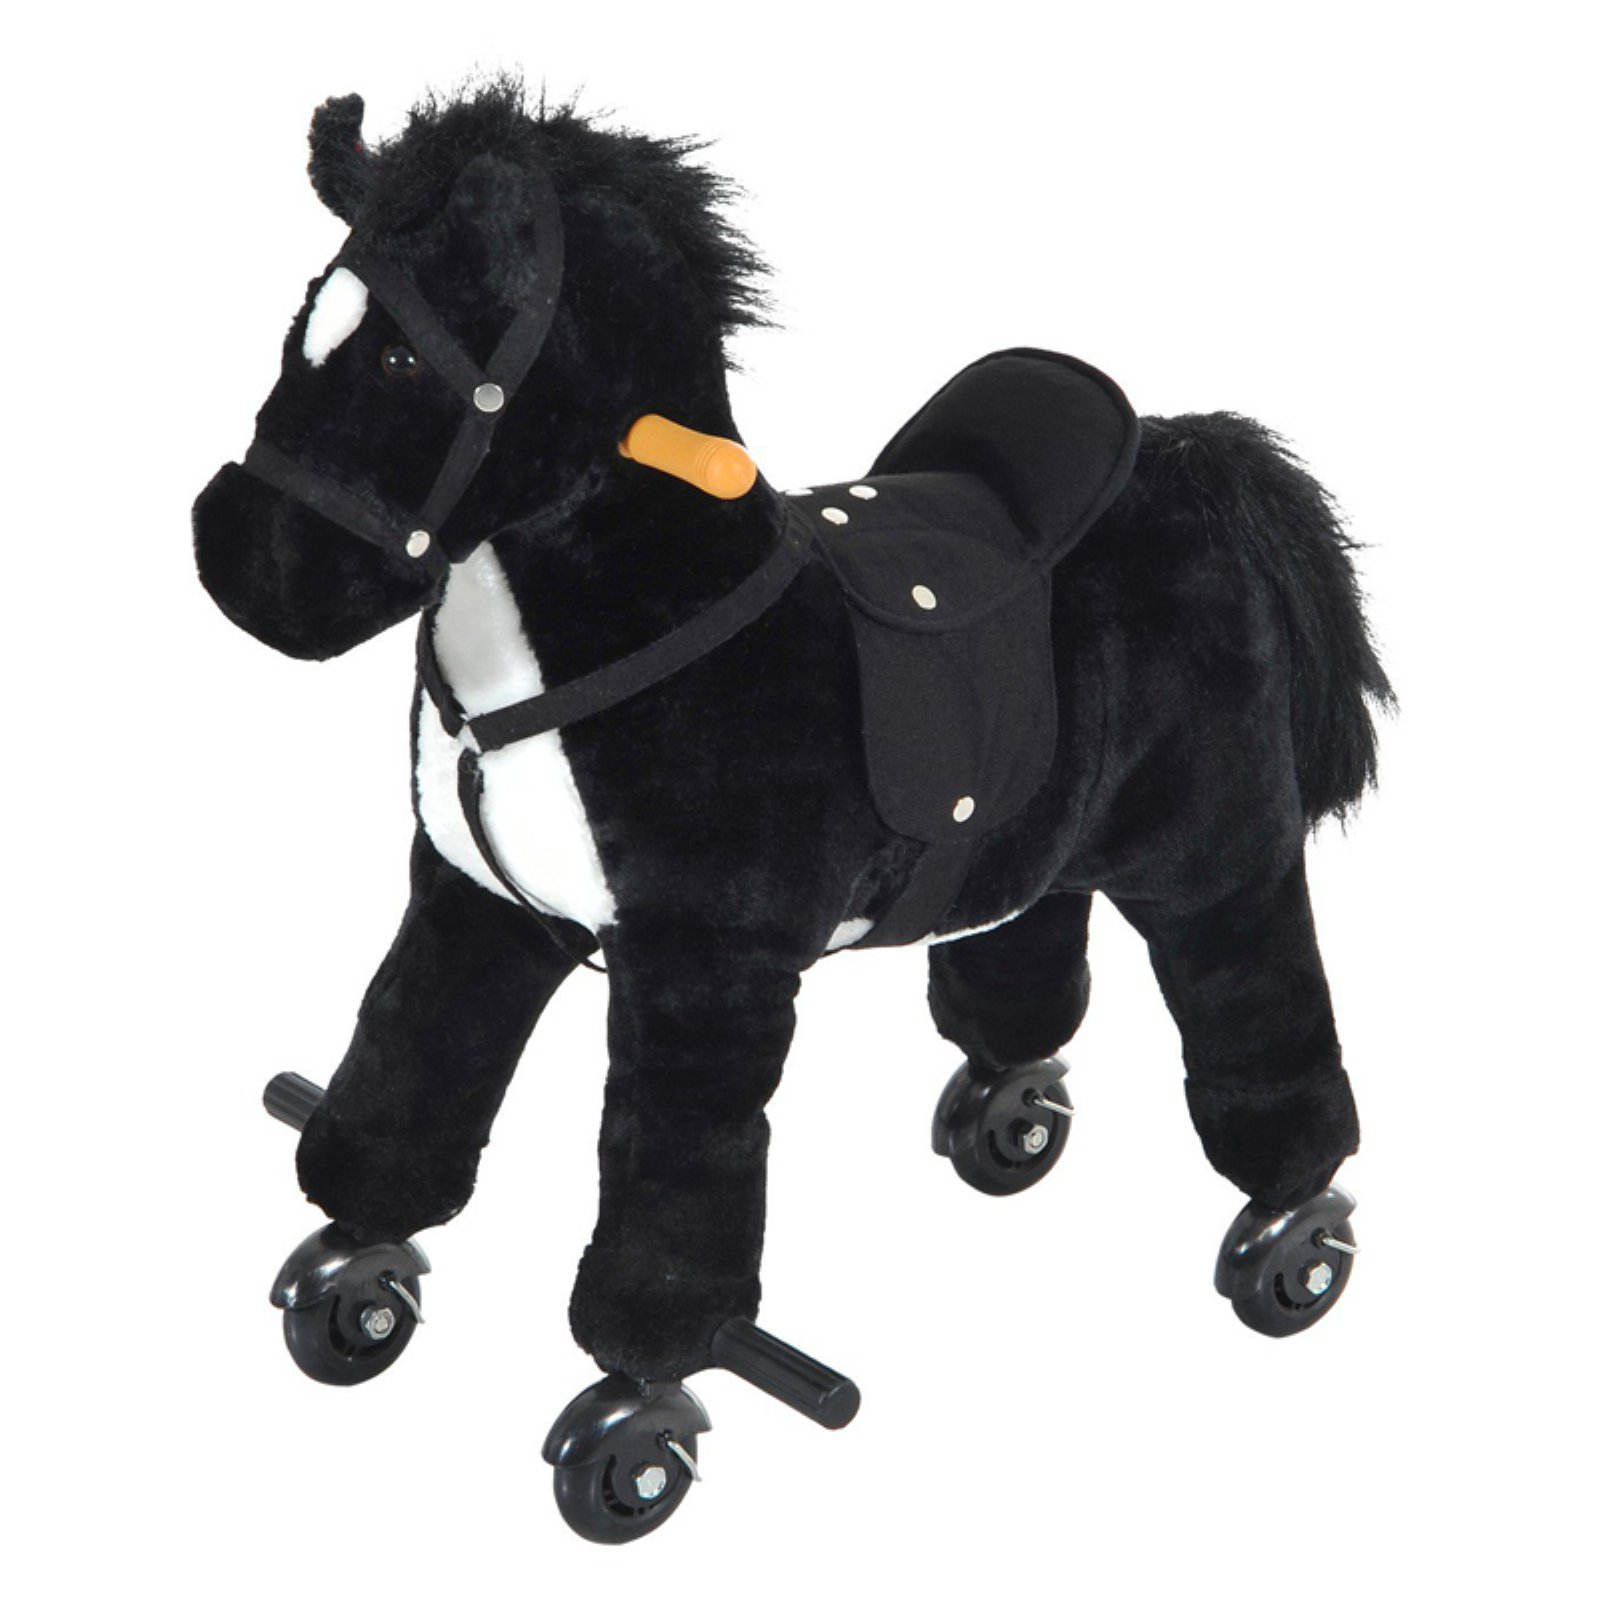 Qaba Plush Walking Horse Toy with Wheels and Sound by Aosom LLC